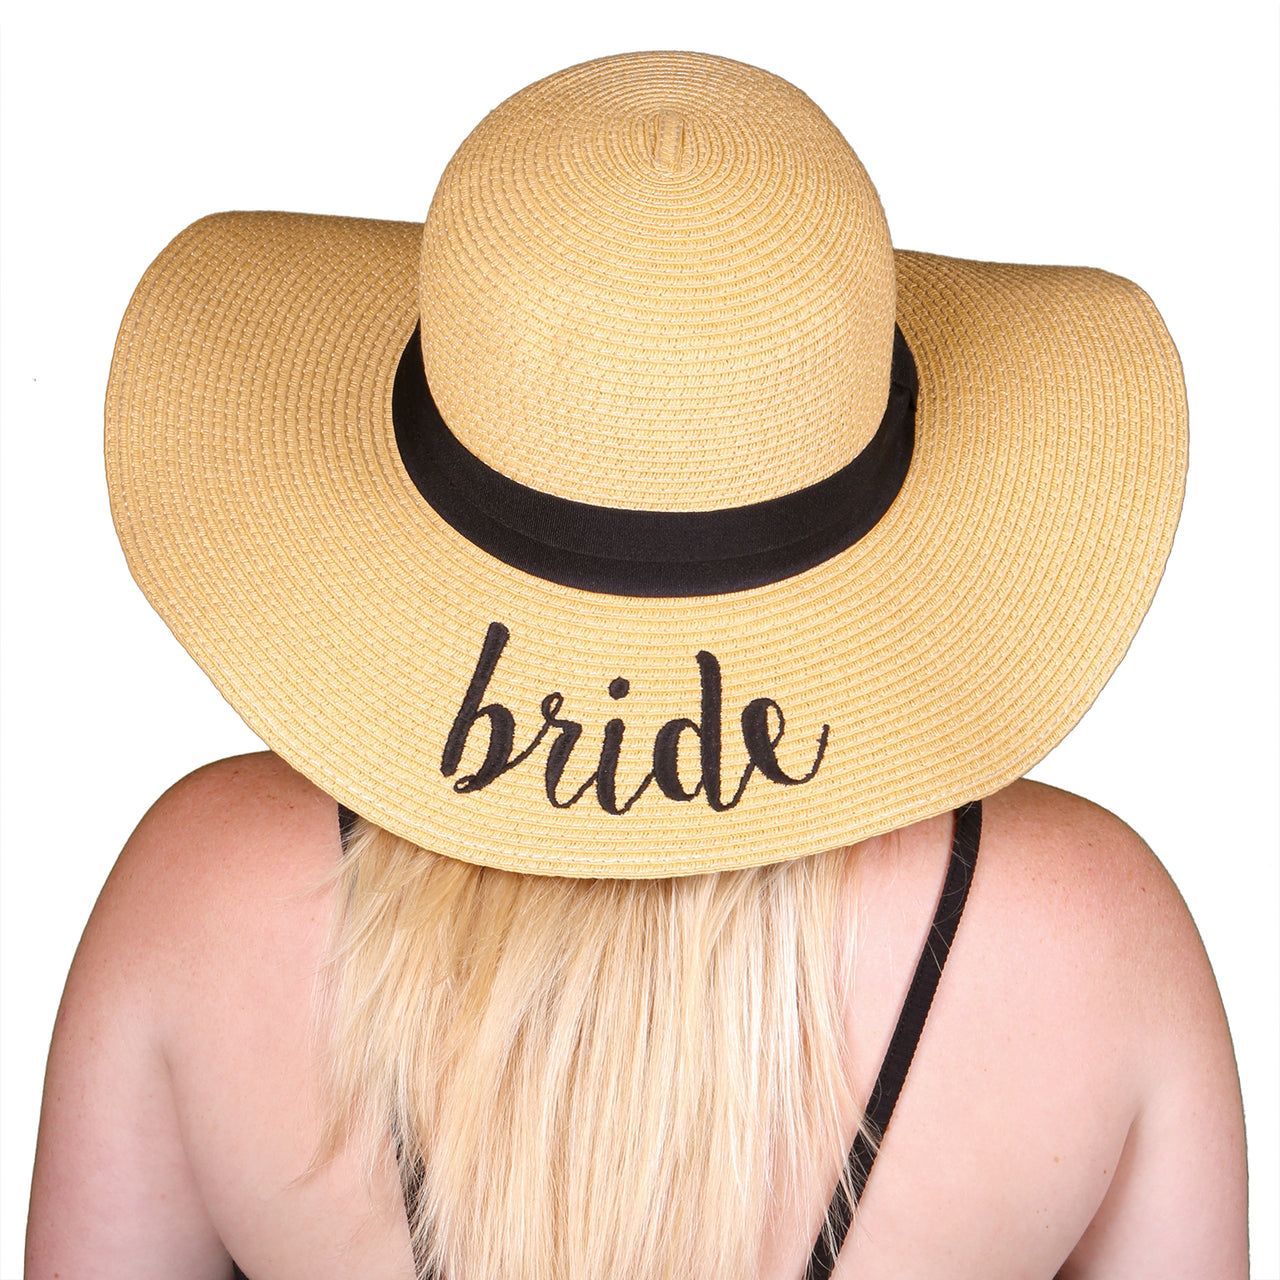 C.C Embroidered Sun Hat - Bride